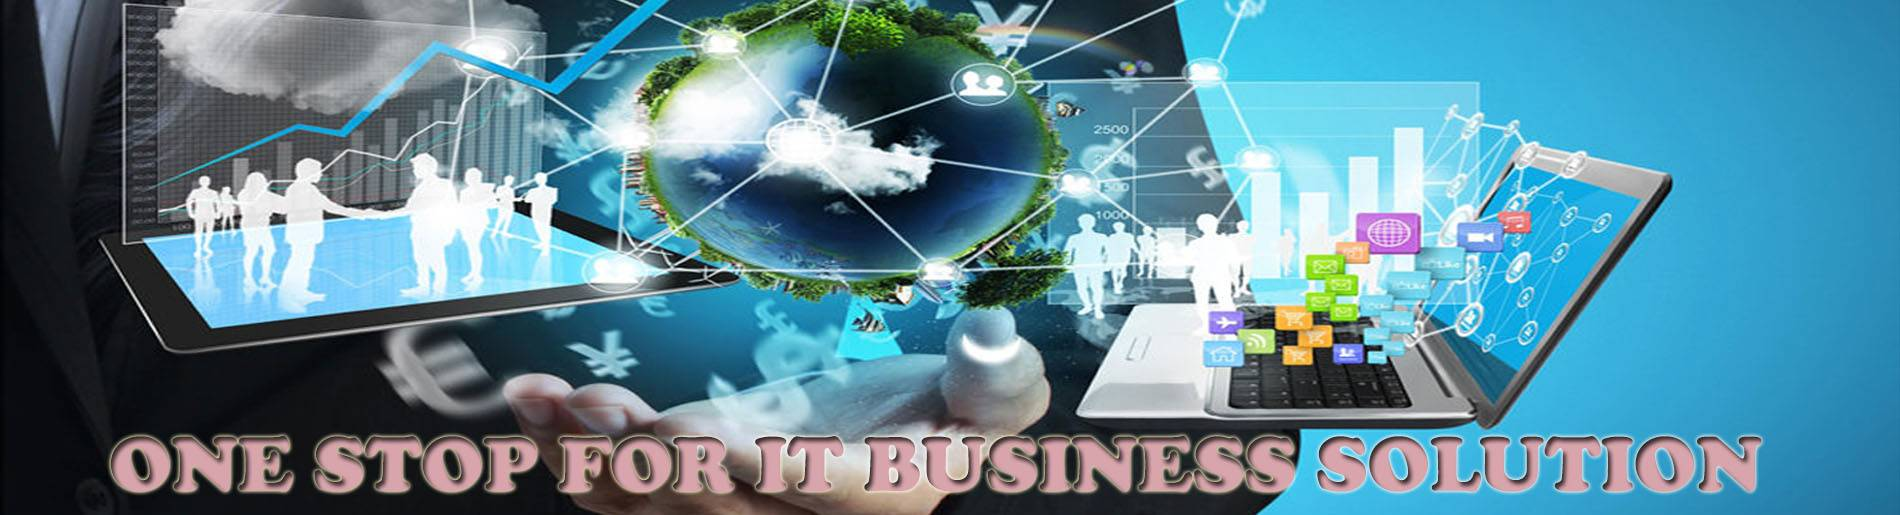 IT BUSINESS SOLUTION